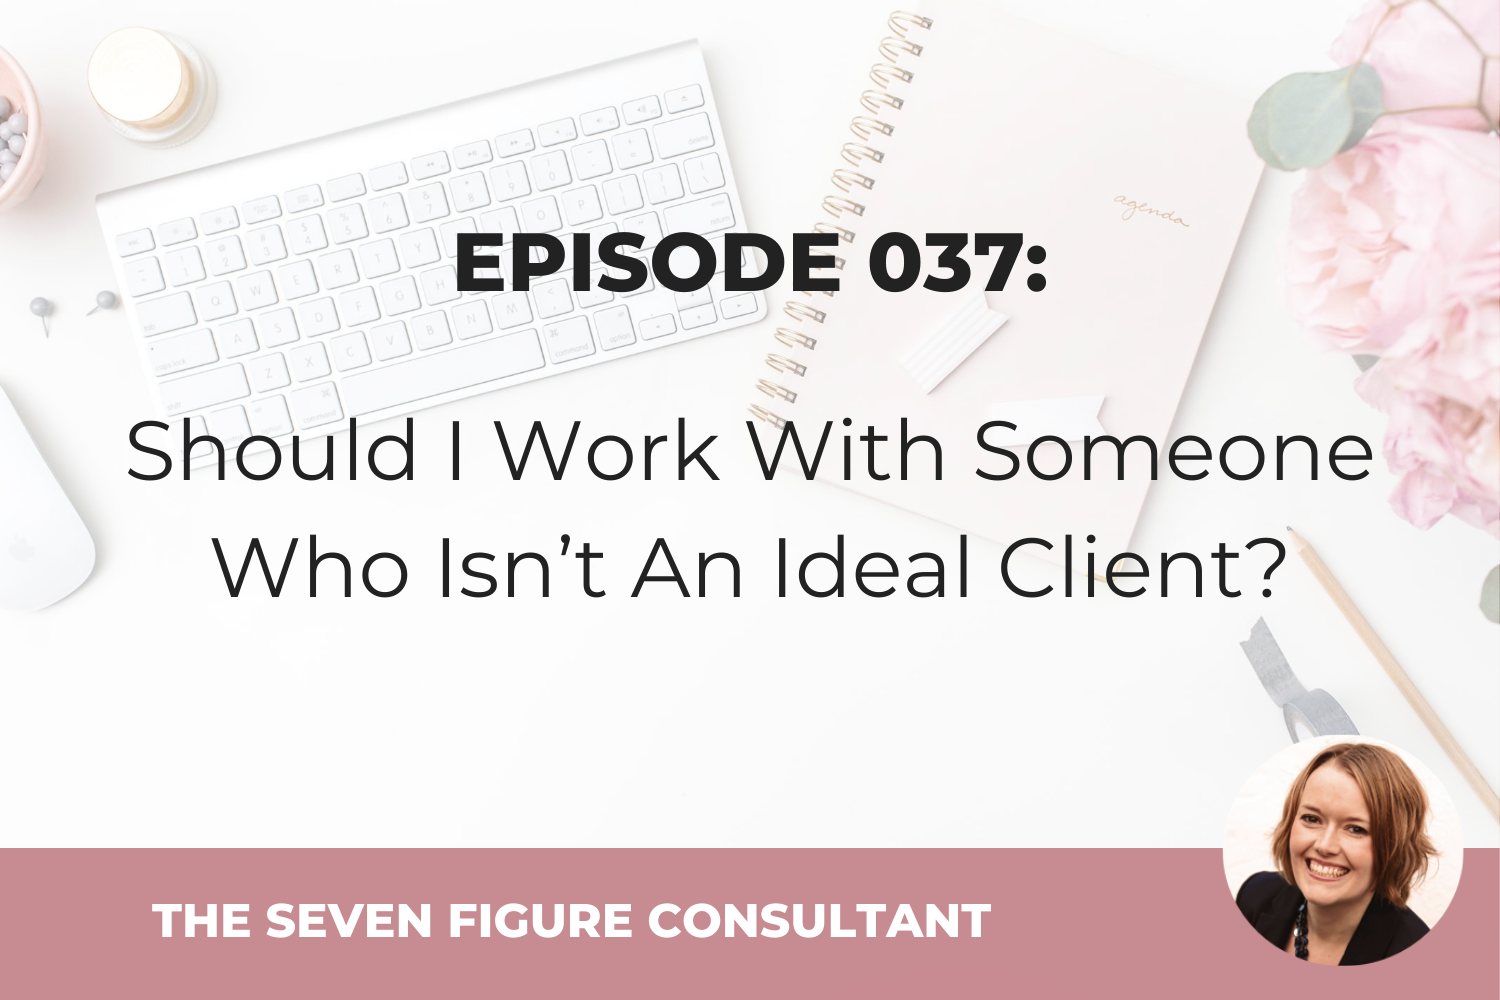 You are currently viewing Episode 037: Should I Work With Someone Who Isn't An Ideal Client?